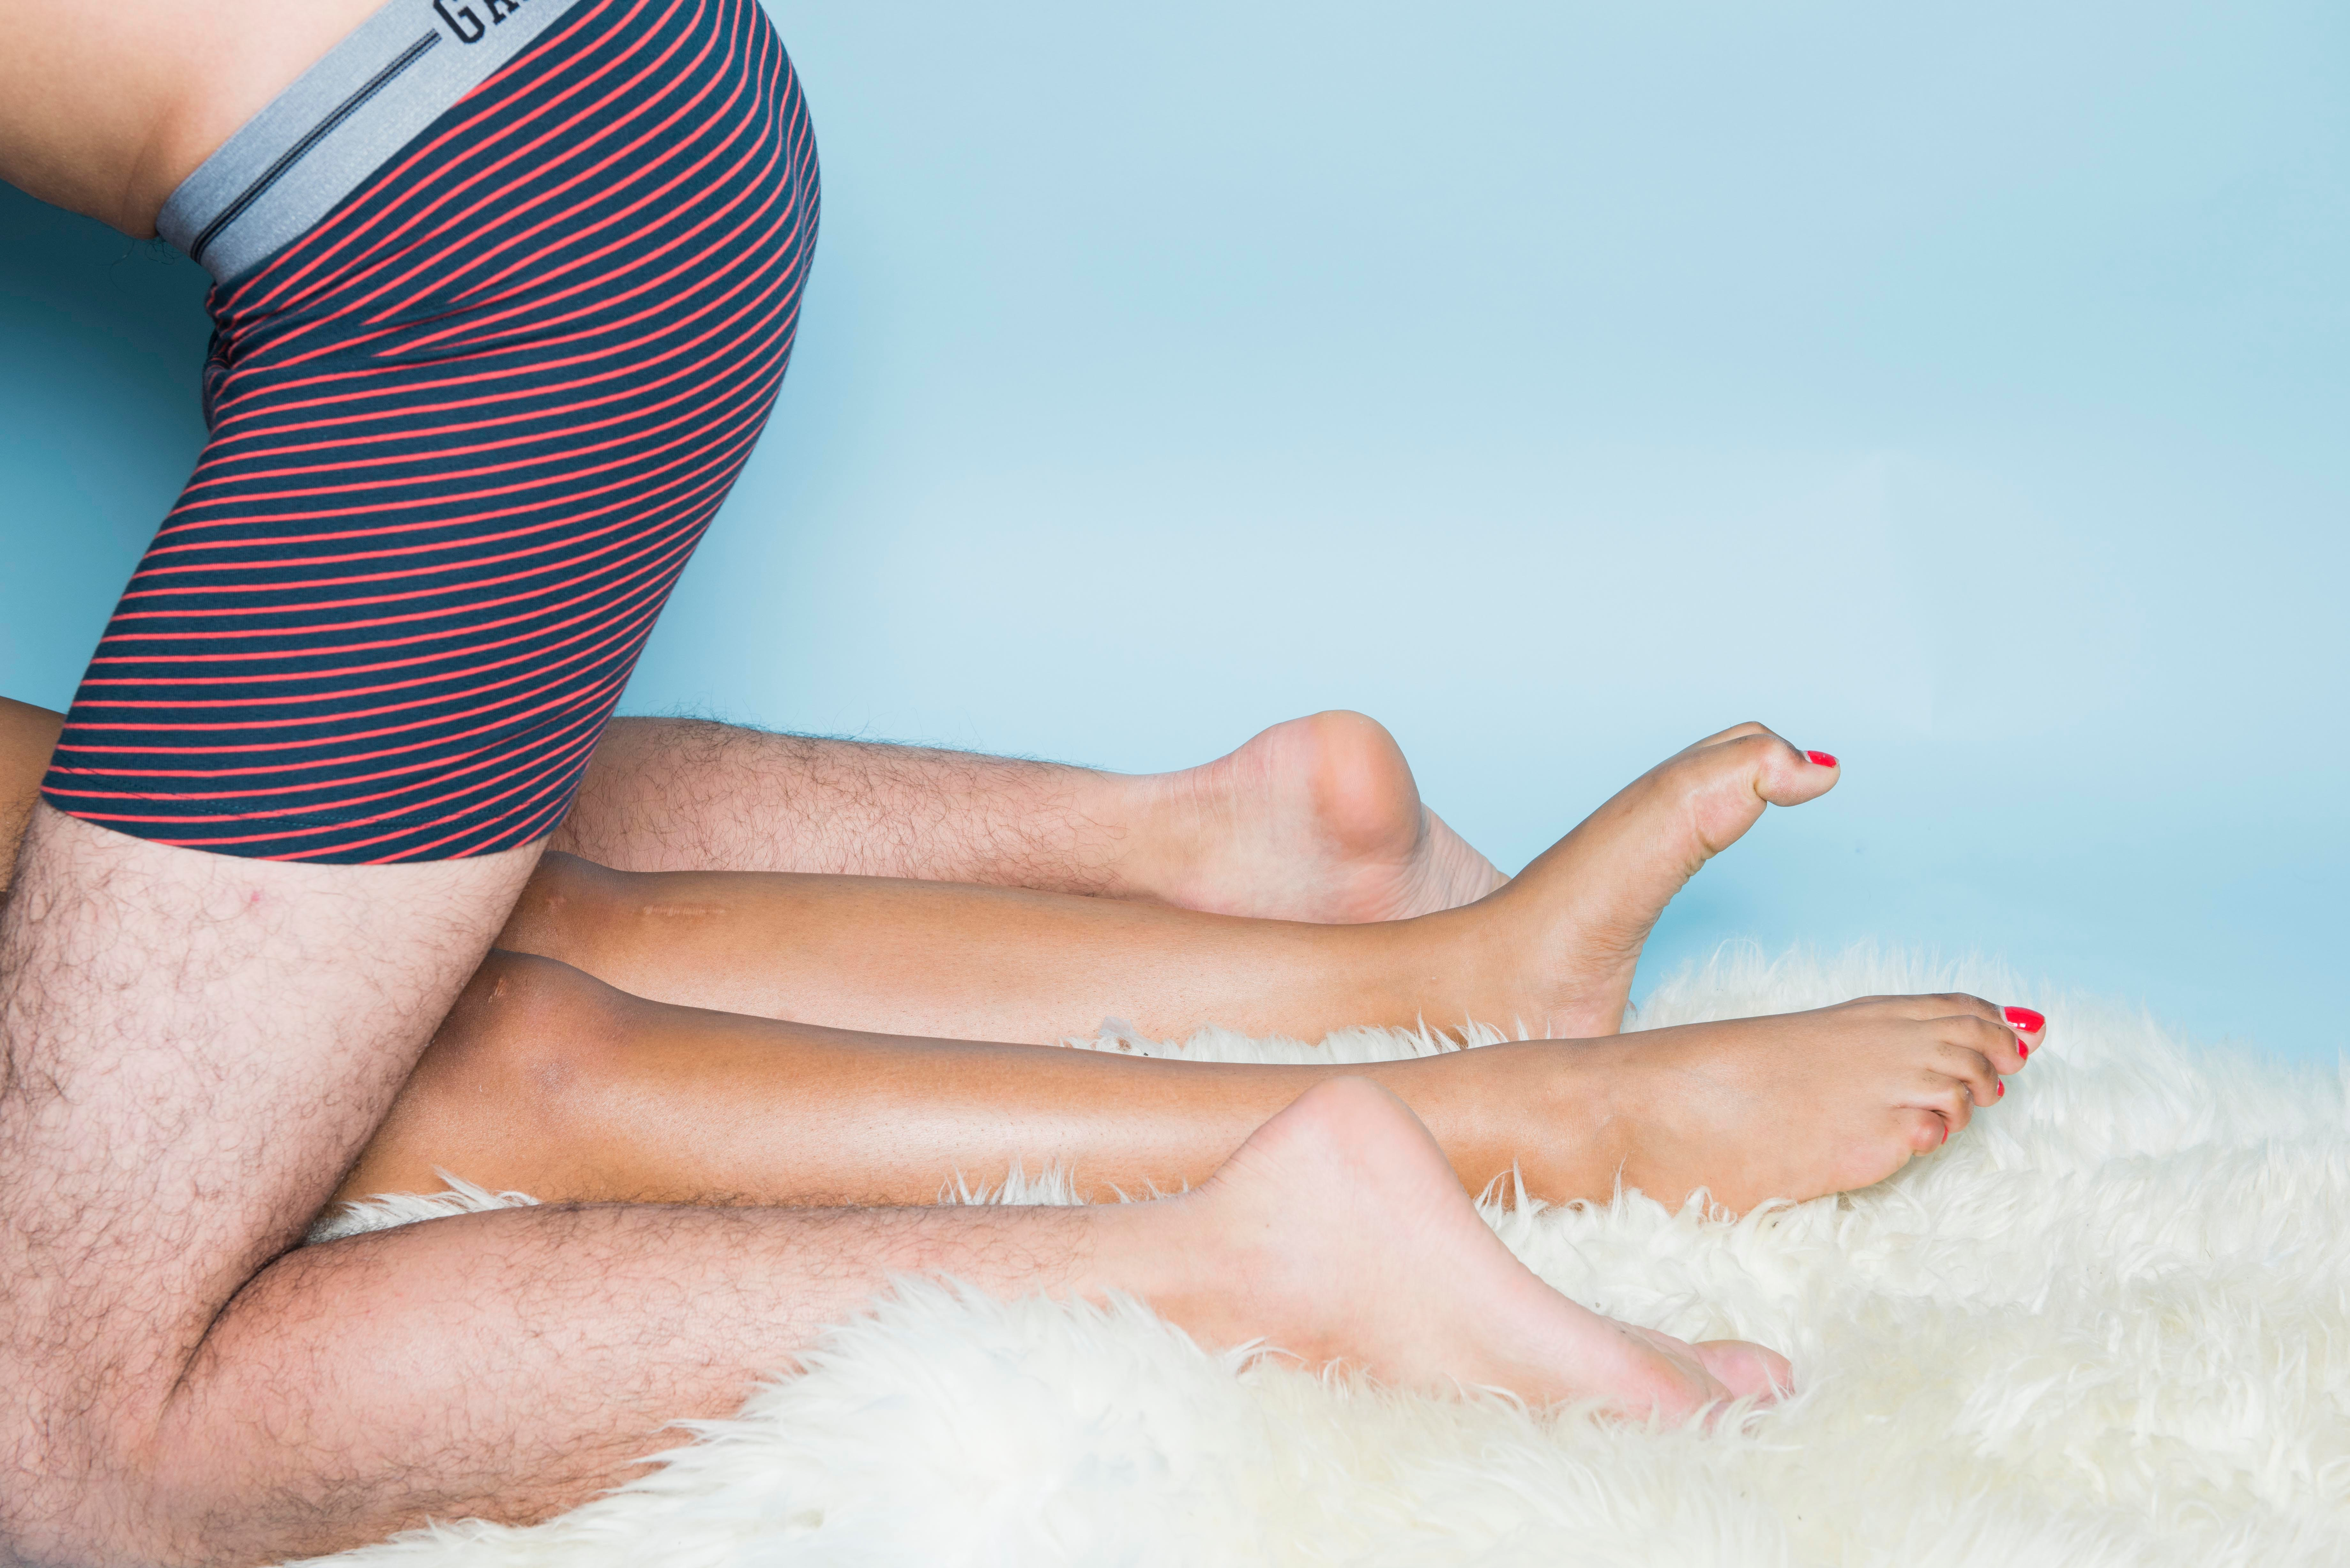 Watch 7 Times You Should Definitely Have Sex video